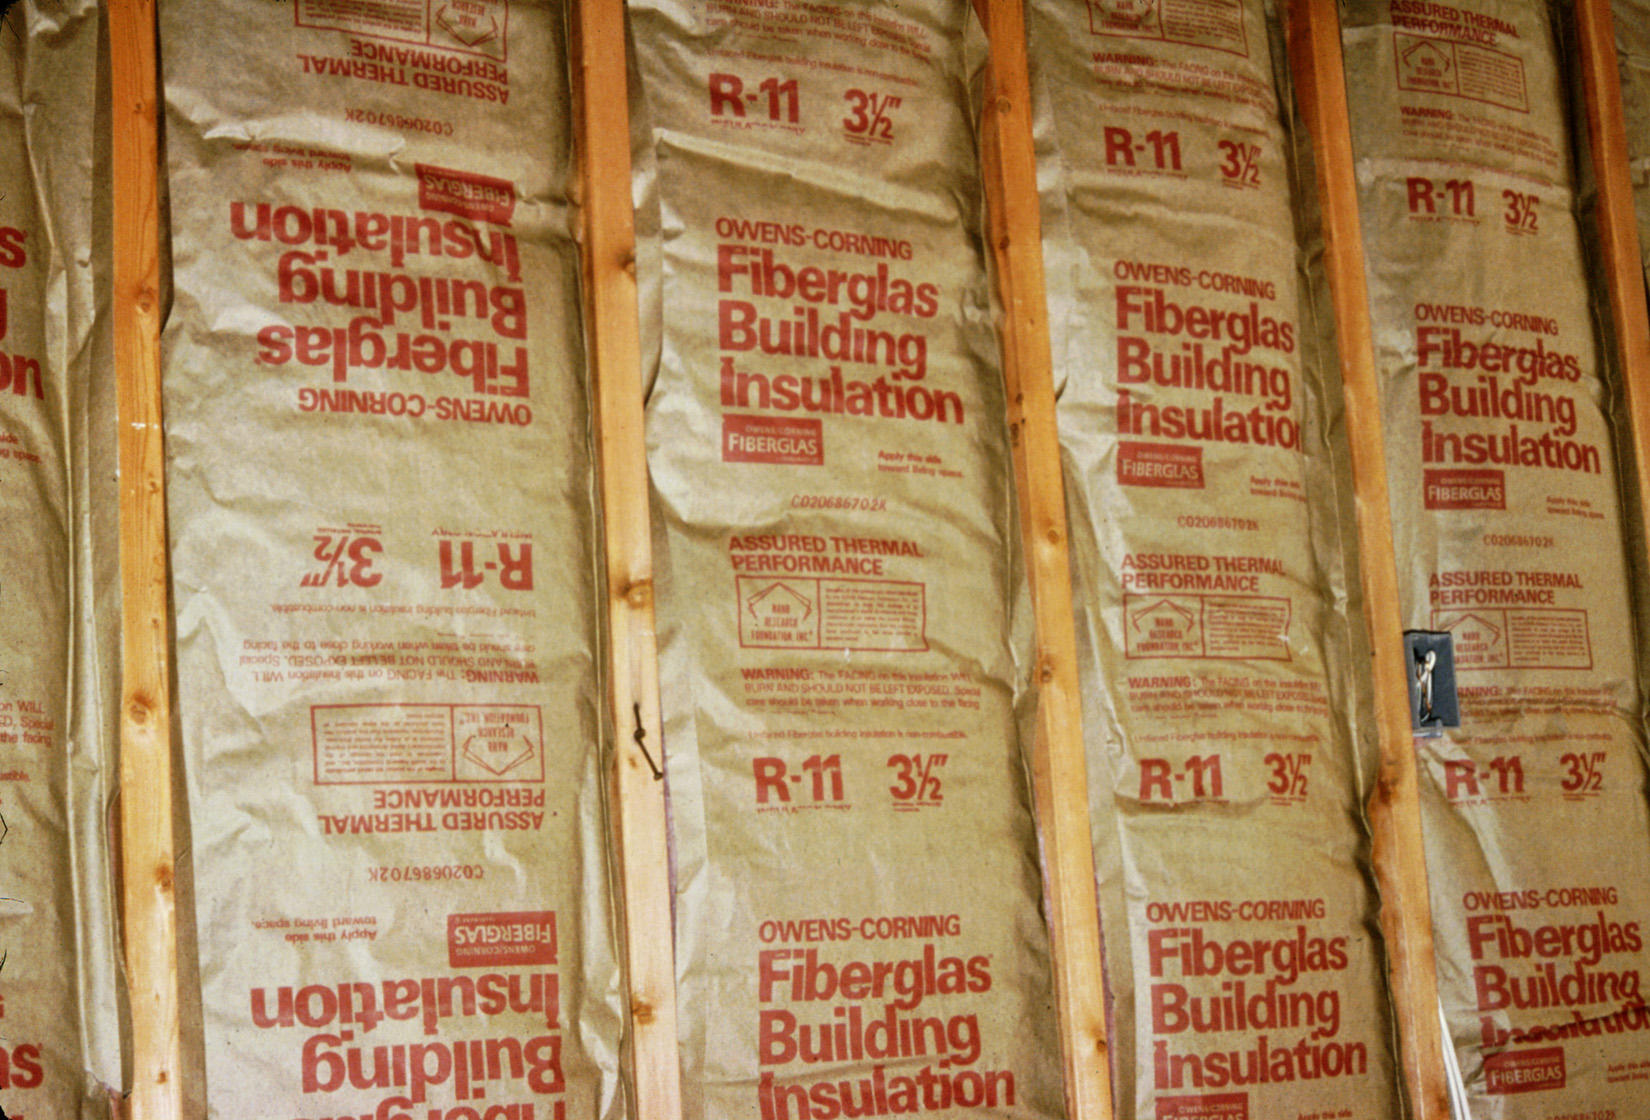 Vapor Barrier Over Faced Insulation